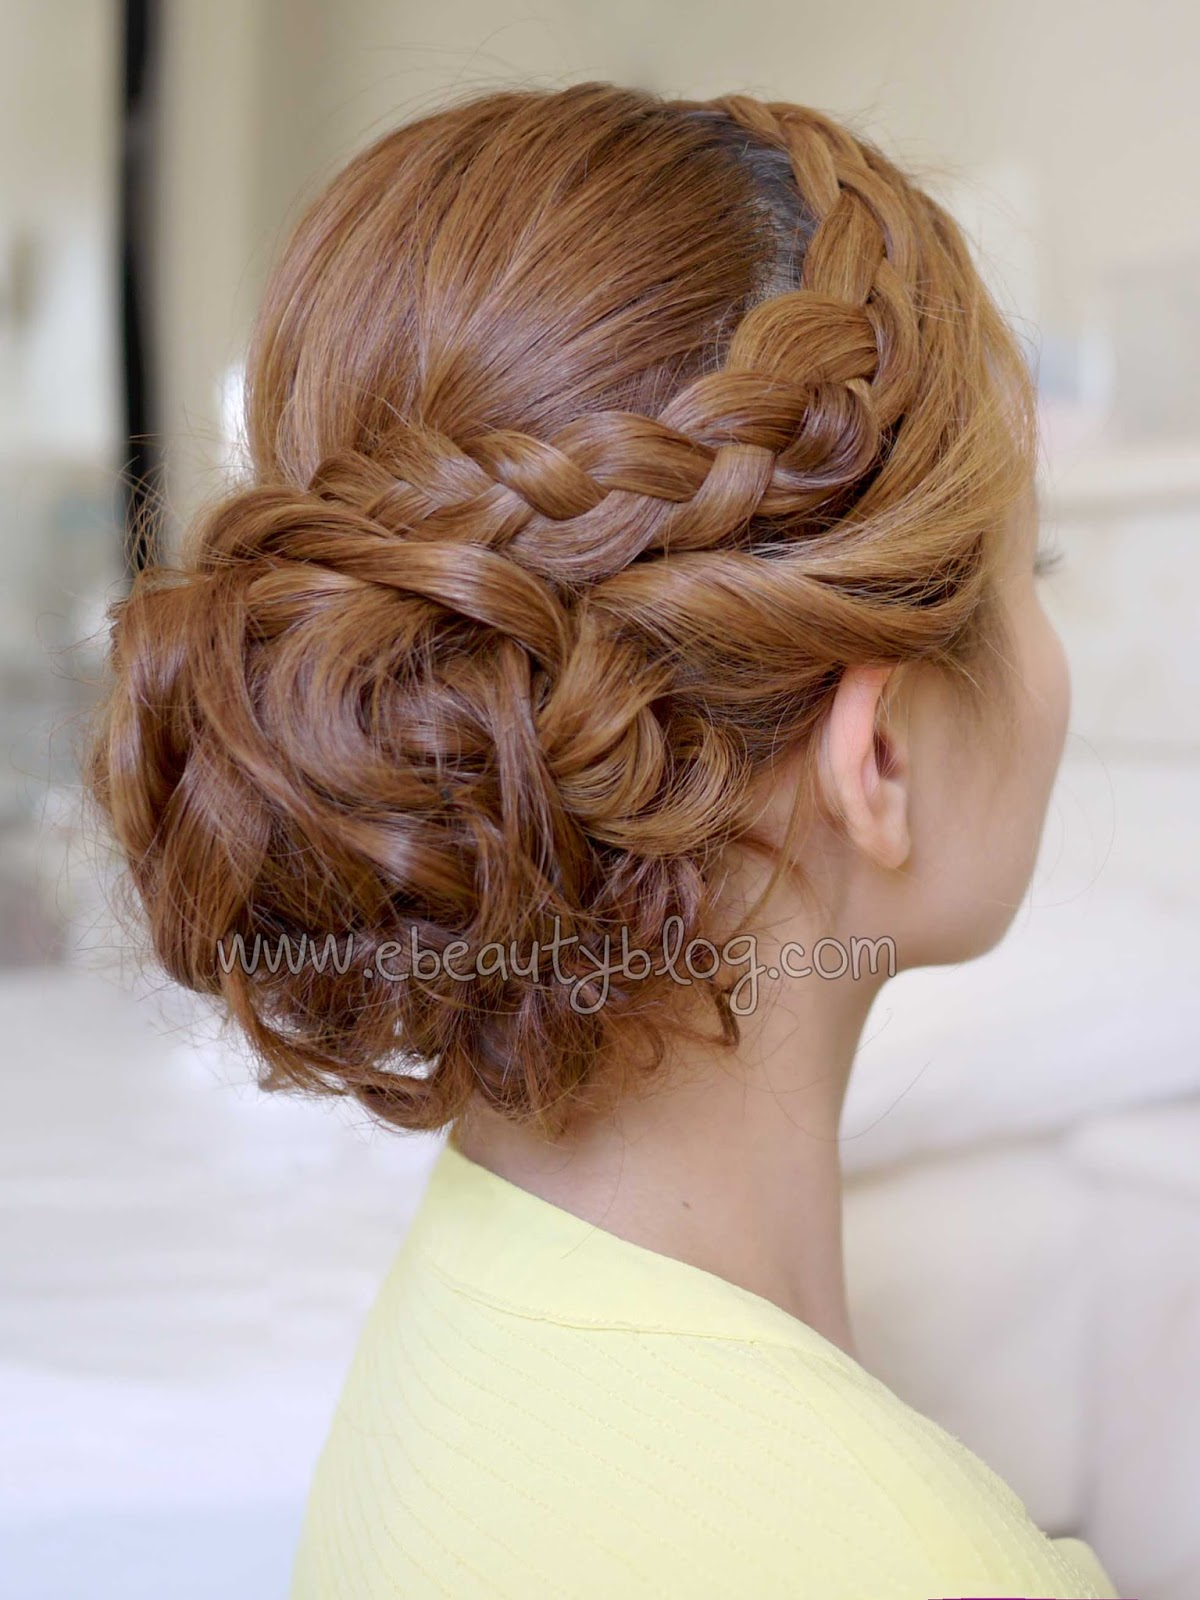 EbeautyBlog.com: Bridal Curly Updo with Braids